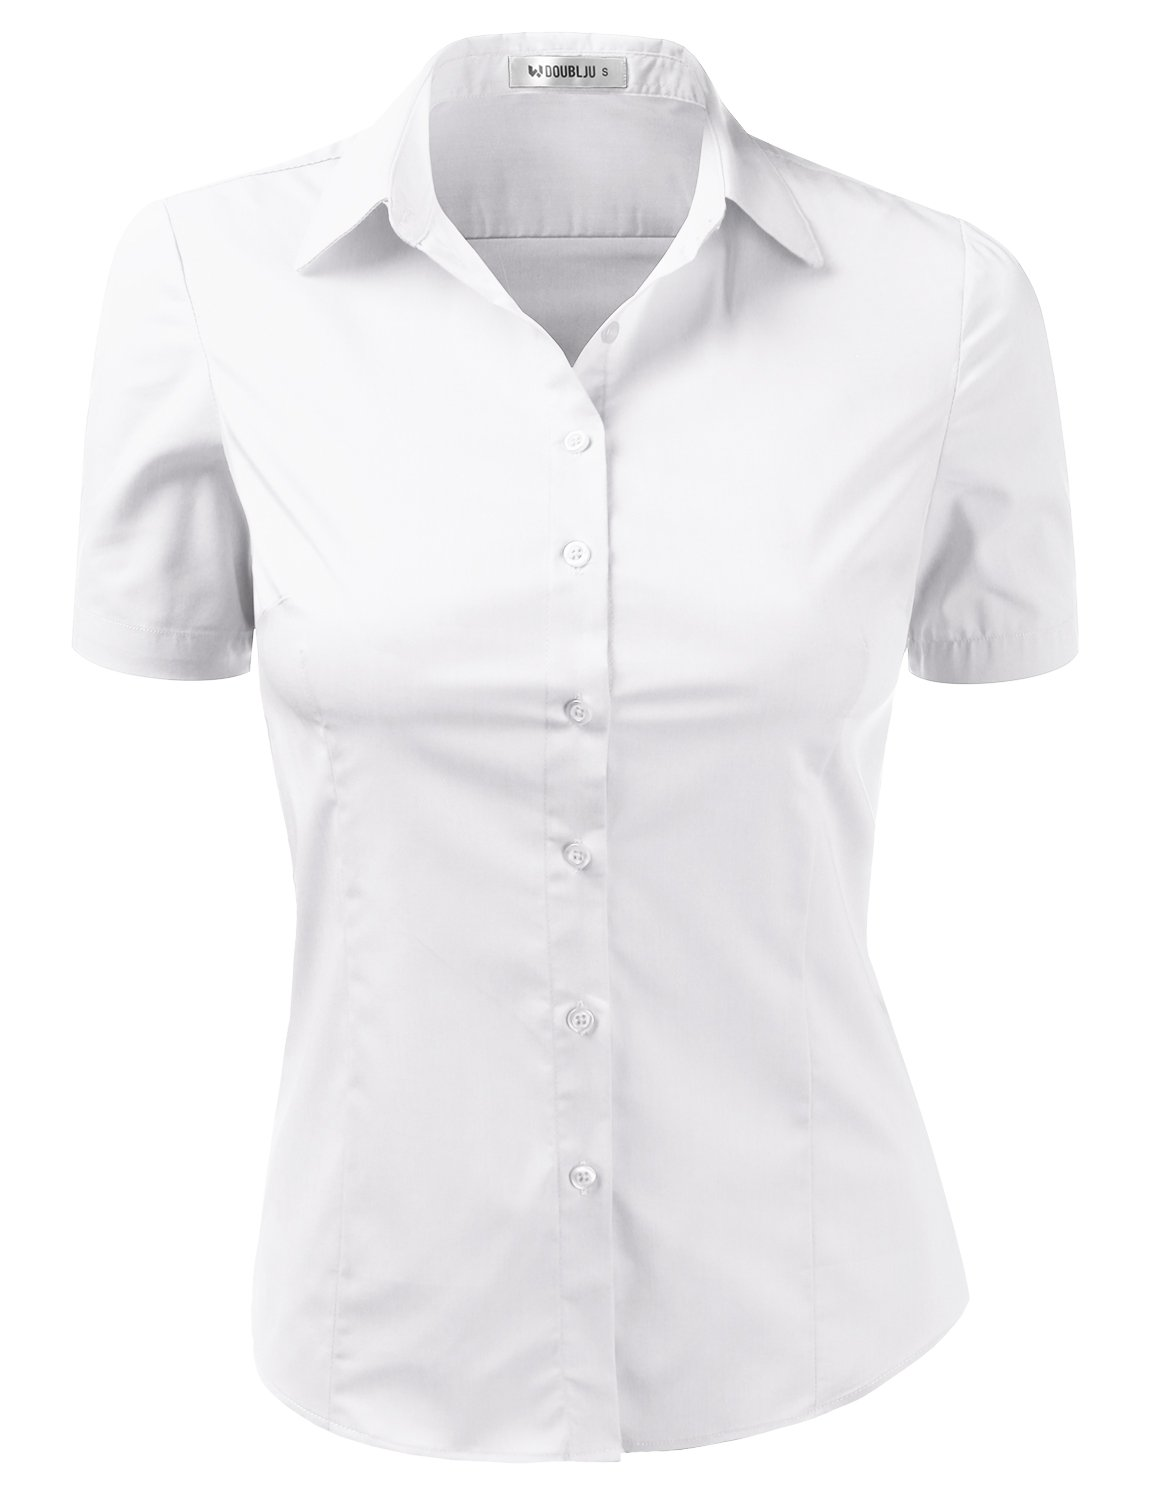 Doublju Womens Slim Fit Plus Size Business Casual Short Sleeve Button Down Dress Shirt White 2XL